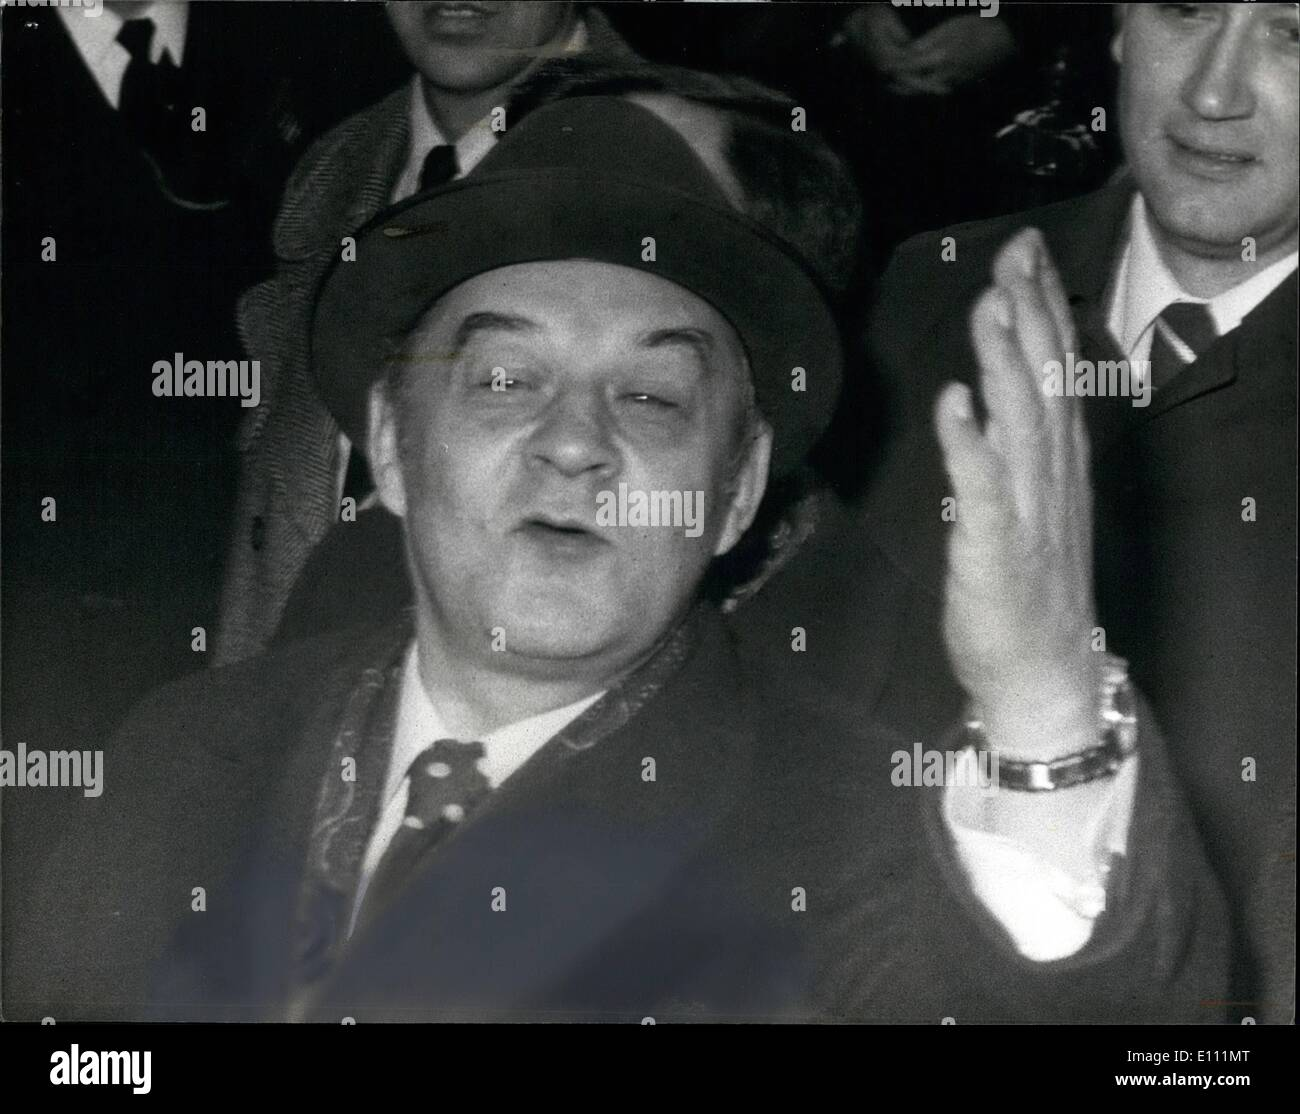 Apr. 04, 1975 - Demonstrations as Alexander Shelepin arrives in London.: Alexander Shepelin the former KGB chief, who is in London with a Soviet trade union delegation as guests of the TUC, today escaped the angry demonstrators when he entered the TUC building Congress House, by a back entrance.Photo shows Alexander Shelepin leaves Congress House by a back entrance to avoid the demonstrators this evening. - Stock Image